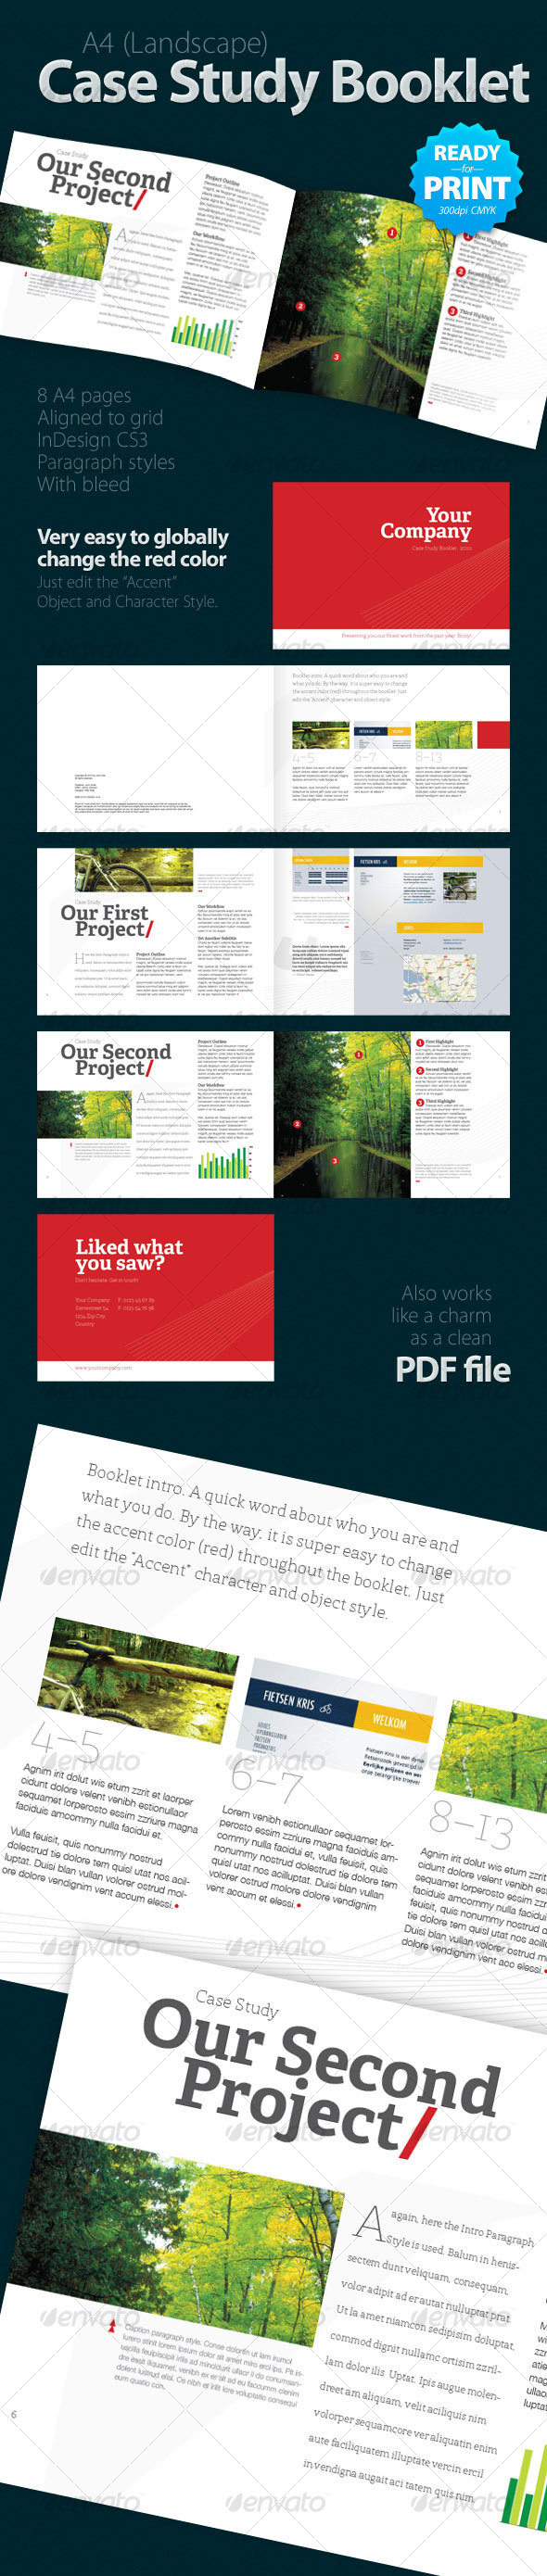 GraphicRiver Case Study Booklet 8 pages 114587